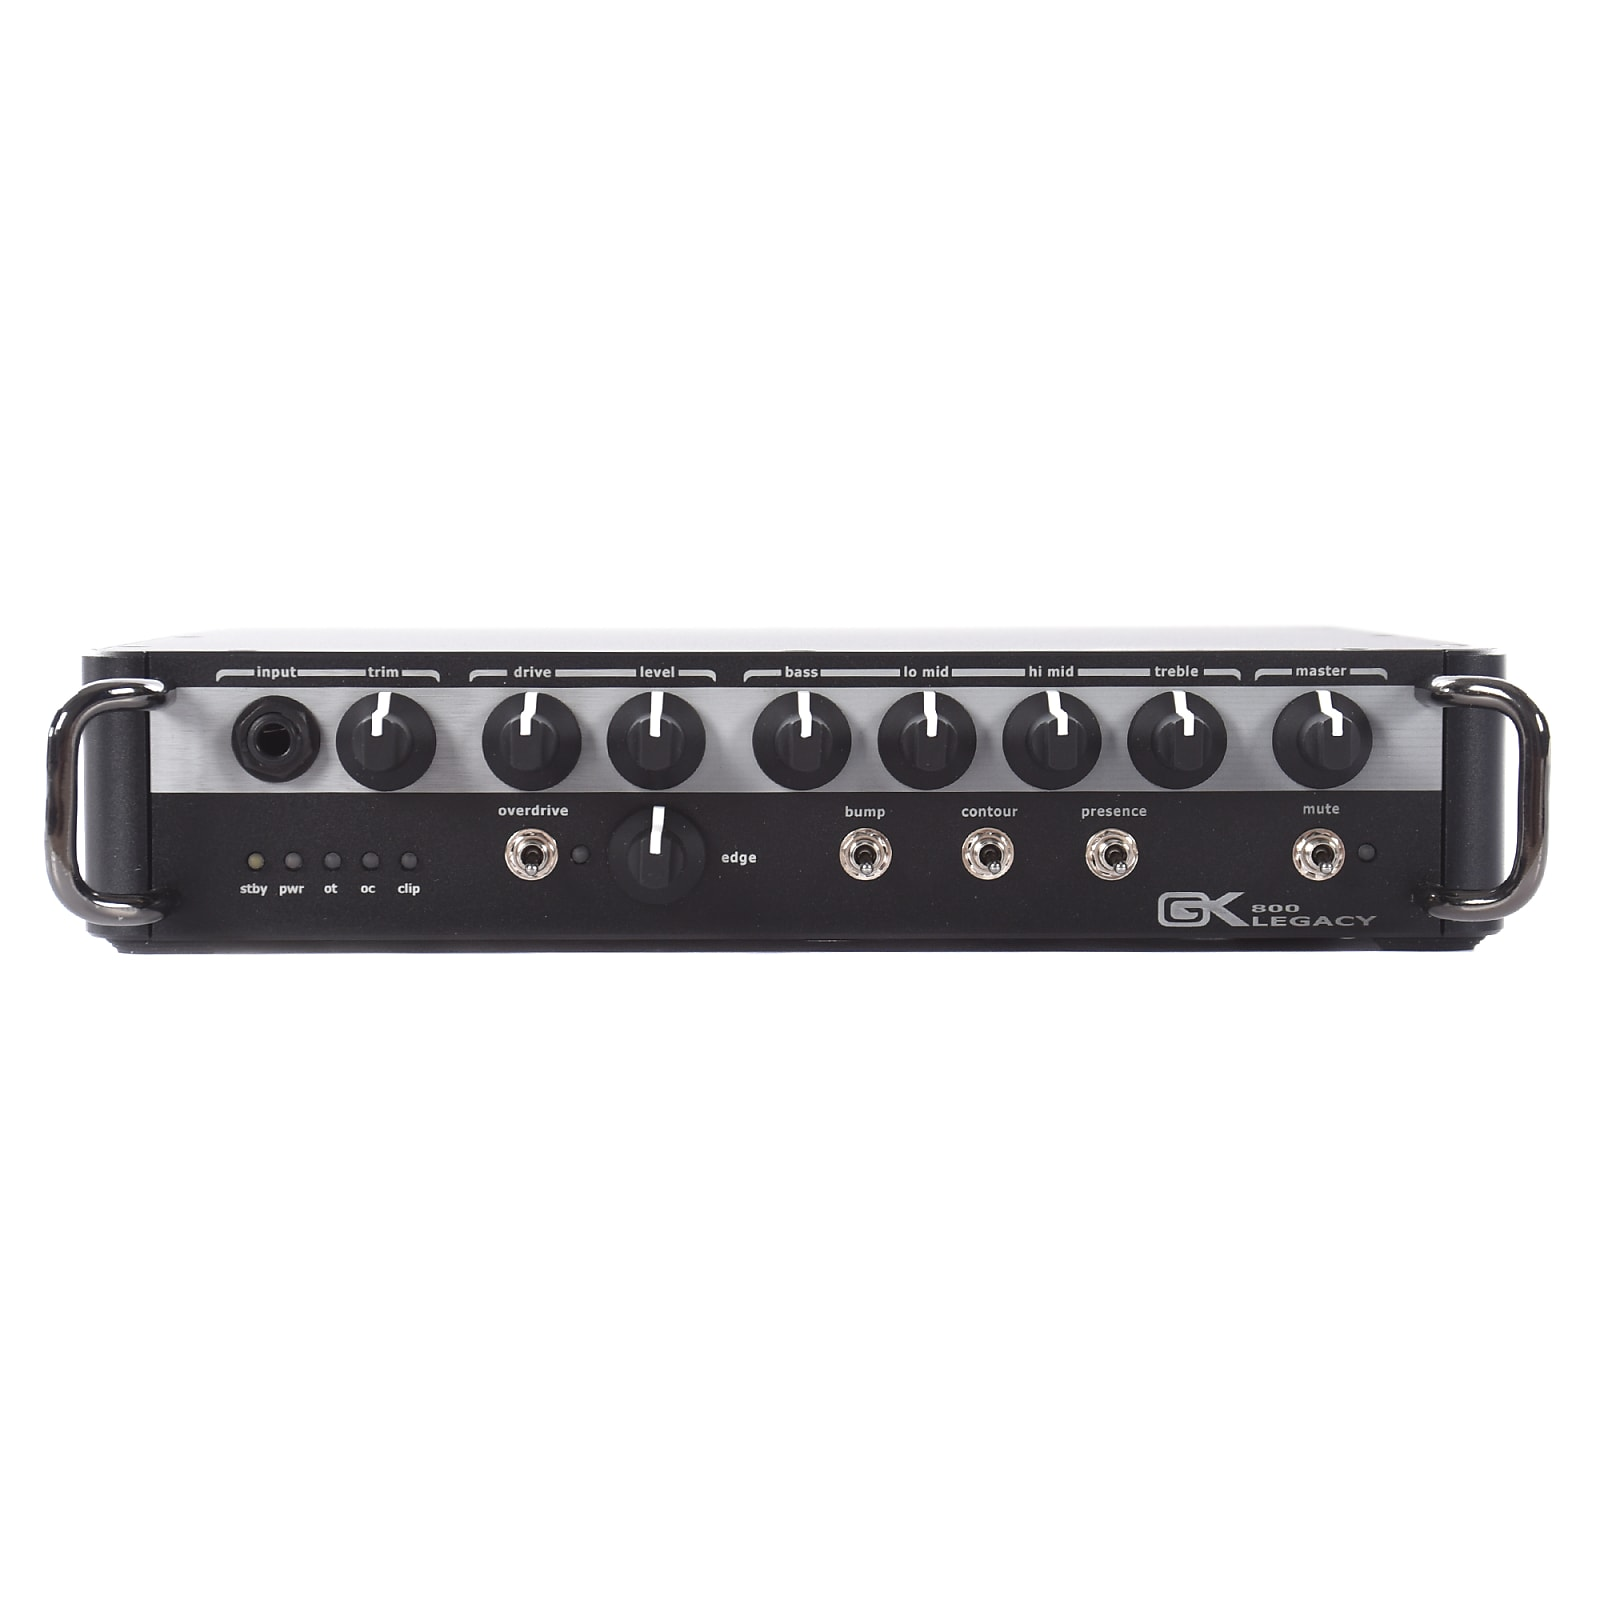 Gallien-Krueger Legacy 800 800W Ultra Light Bass Head